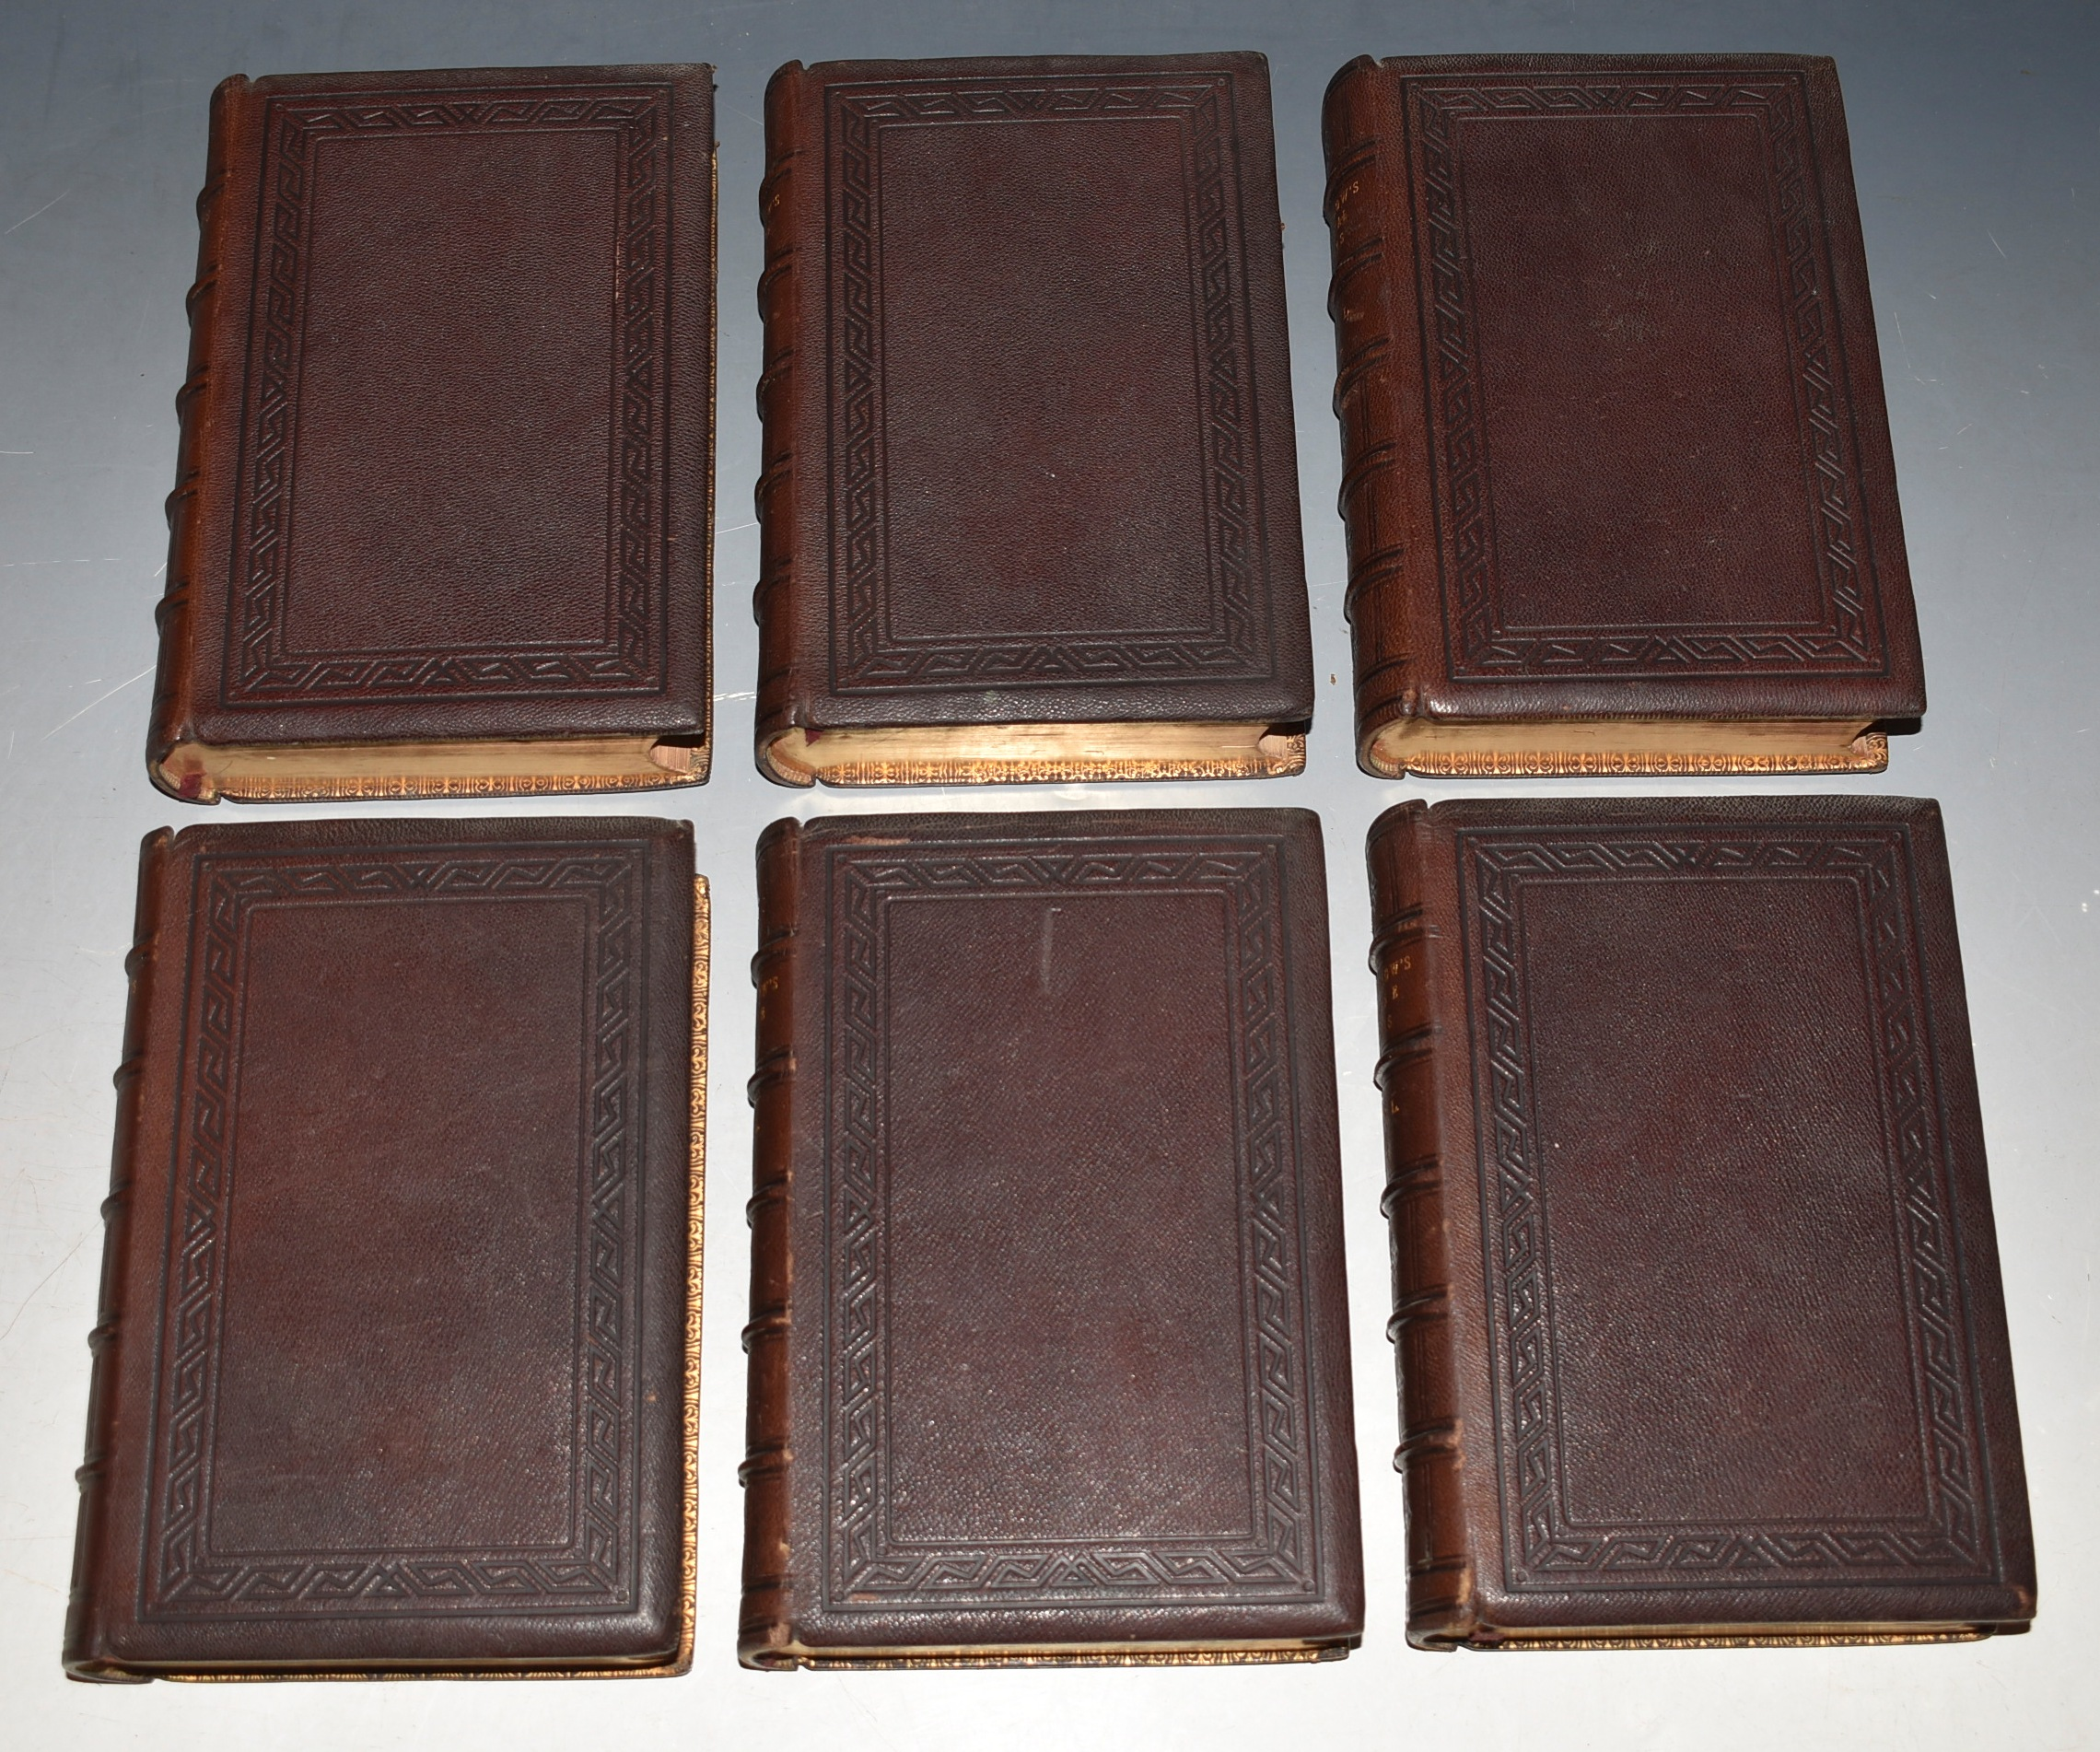 Image for The Poetical AND Prose Works of Henry Wadsworth Longfellow. Poetical Works in Four Volumes. Prose Works in Two Volumes. Set of Six Volumes Total.